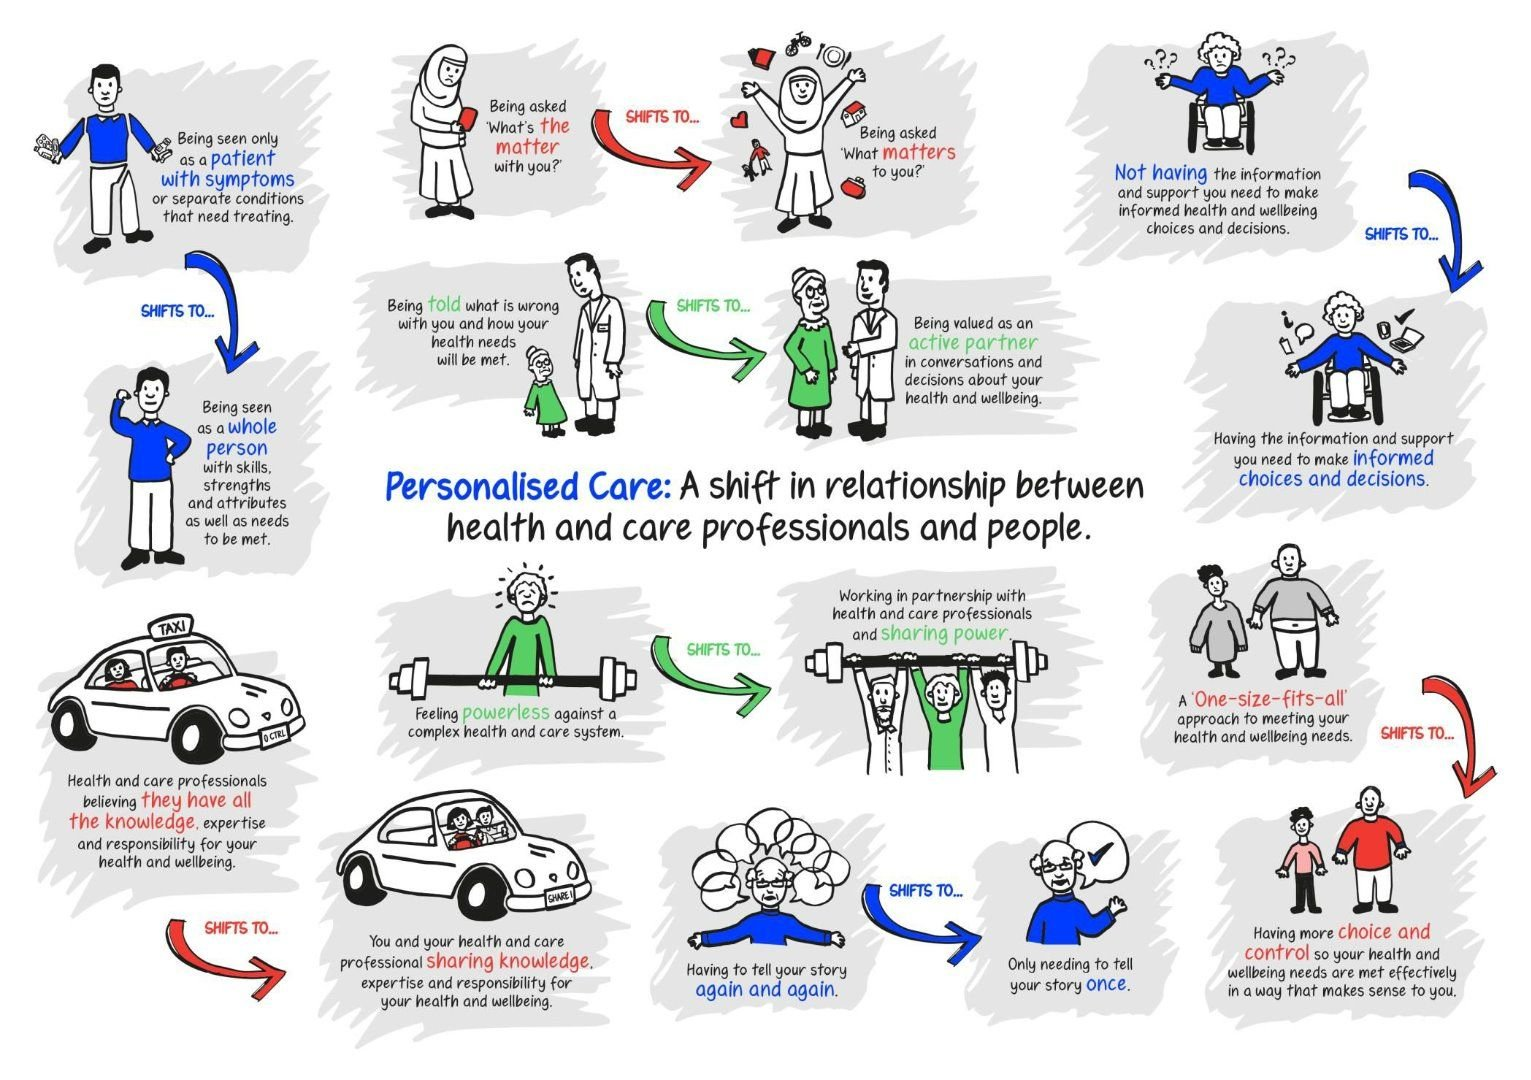 Personalised care - a shift in the relationship between people and health professionals